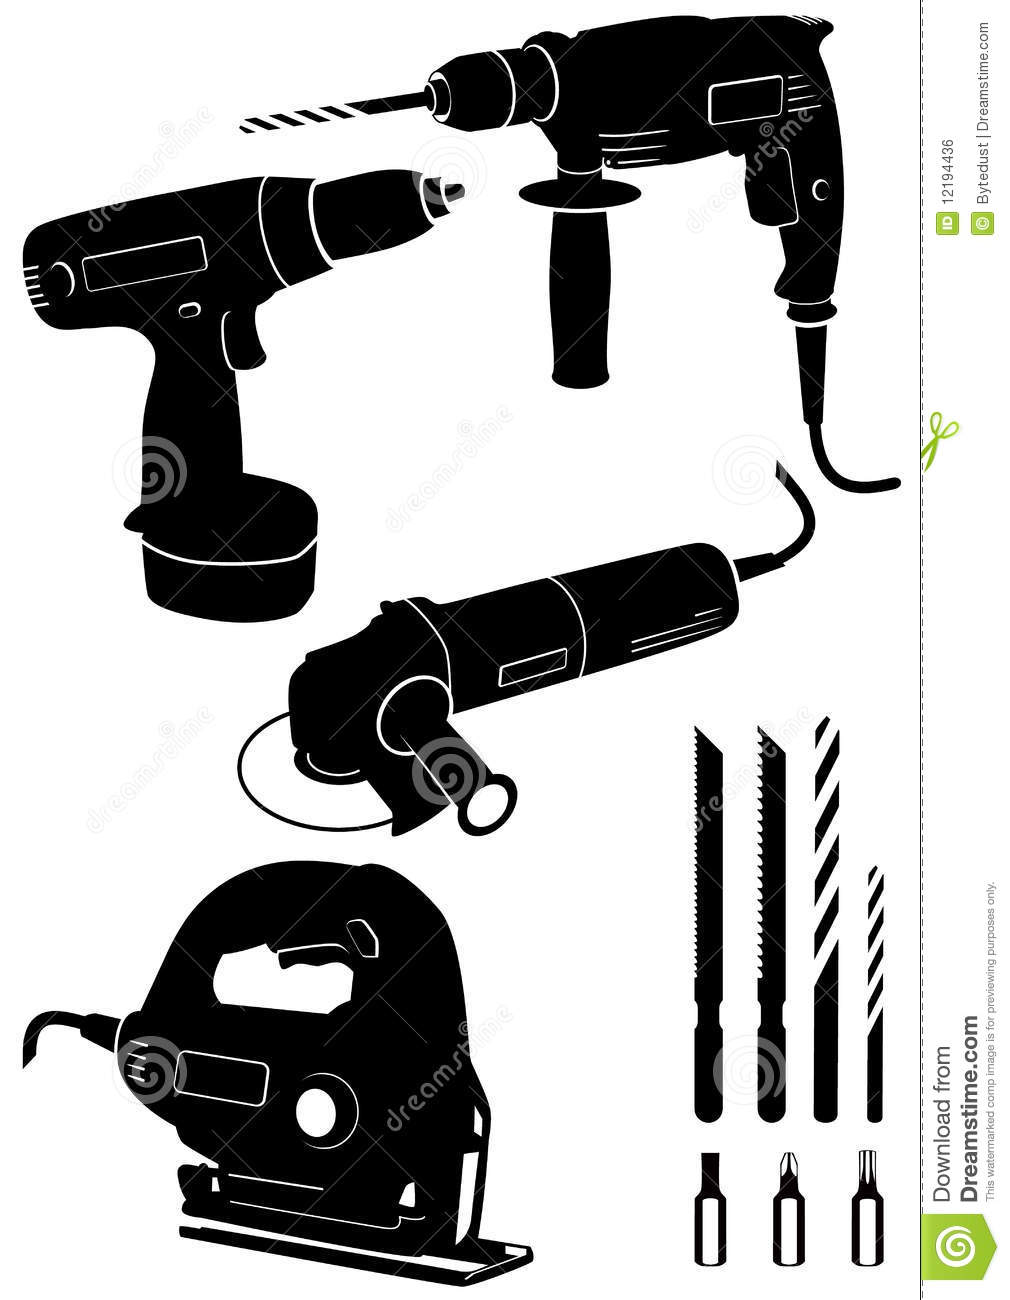 Vector illustration set of different electric power tools. All objects ...